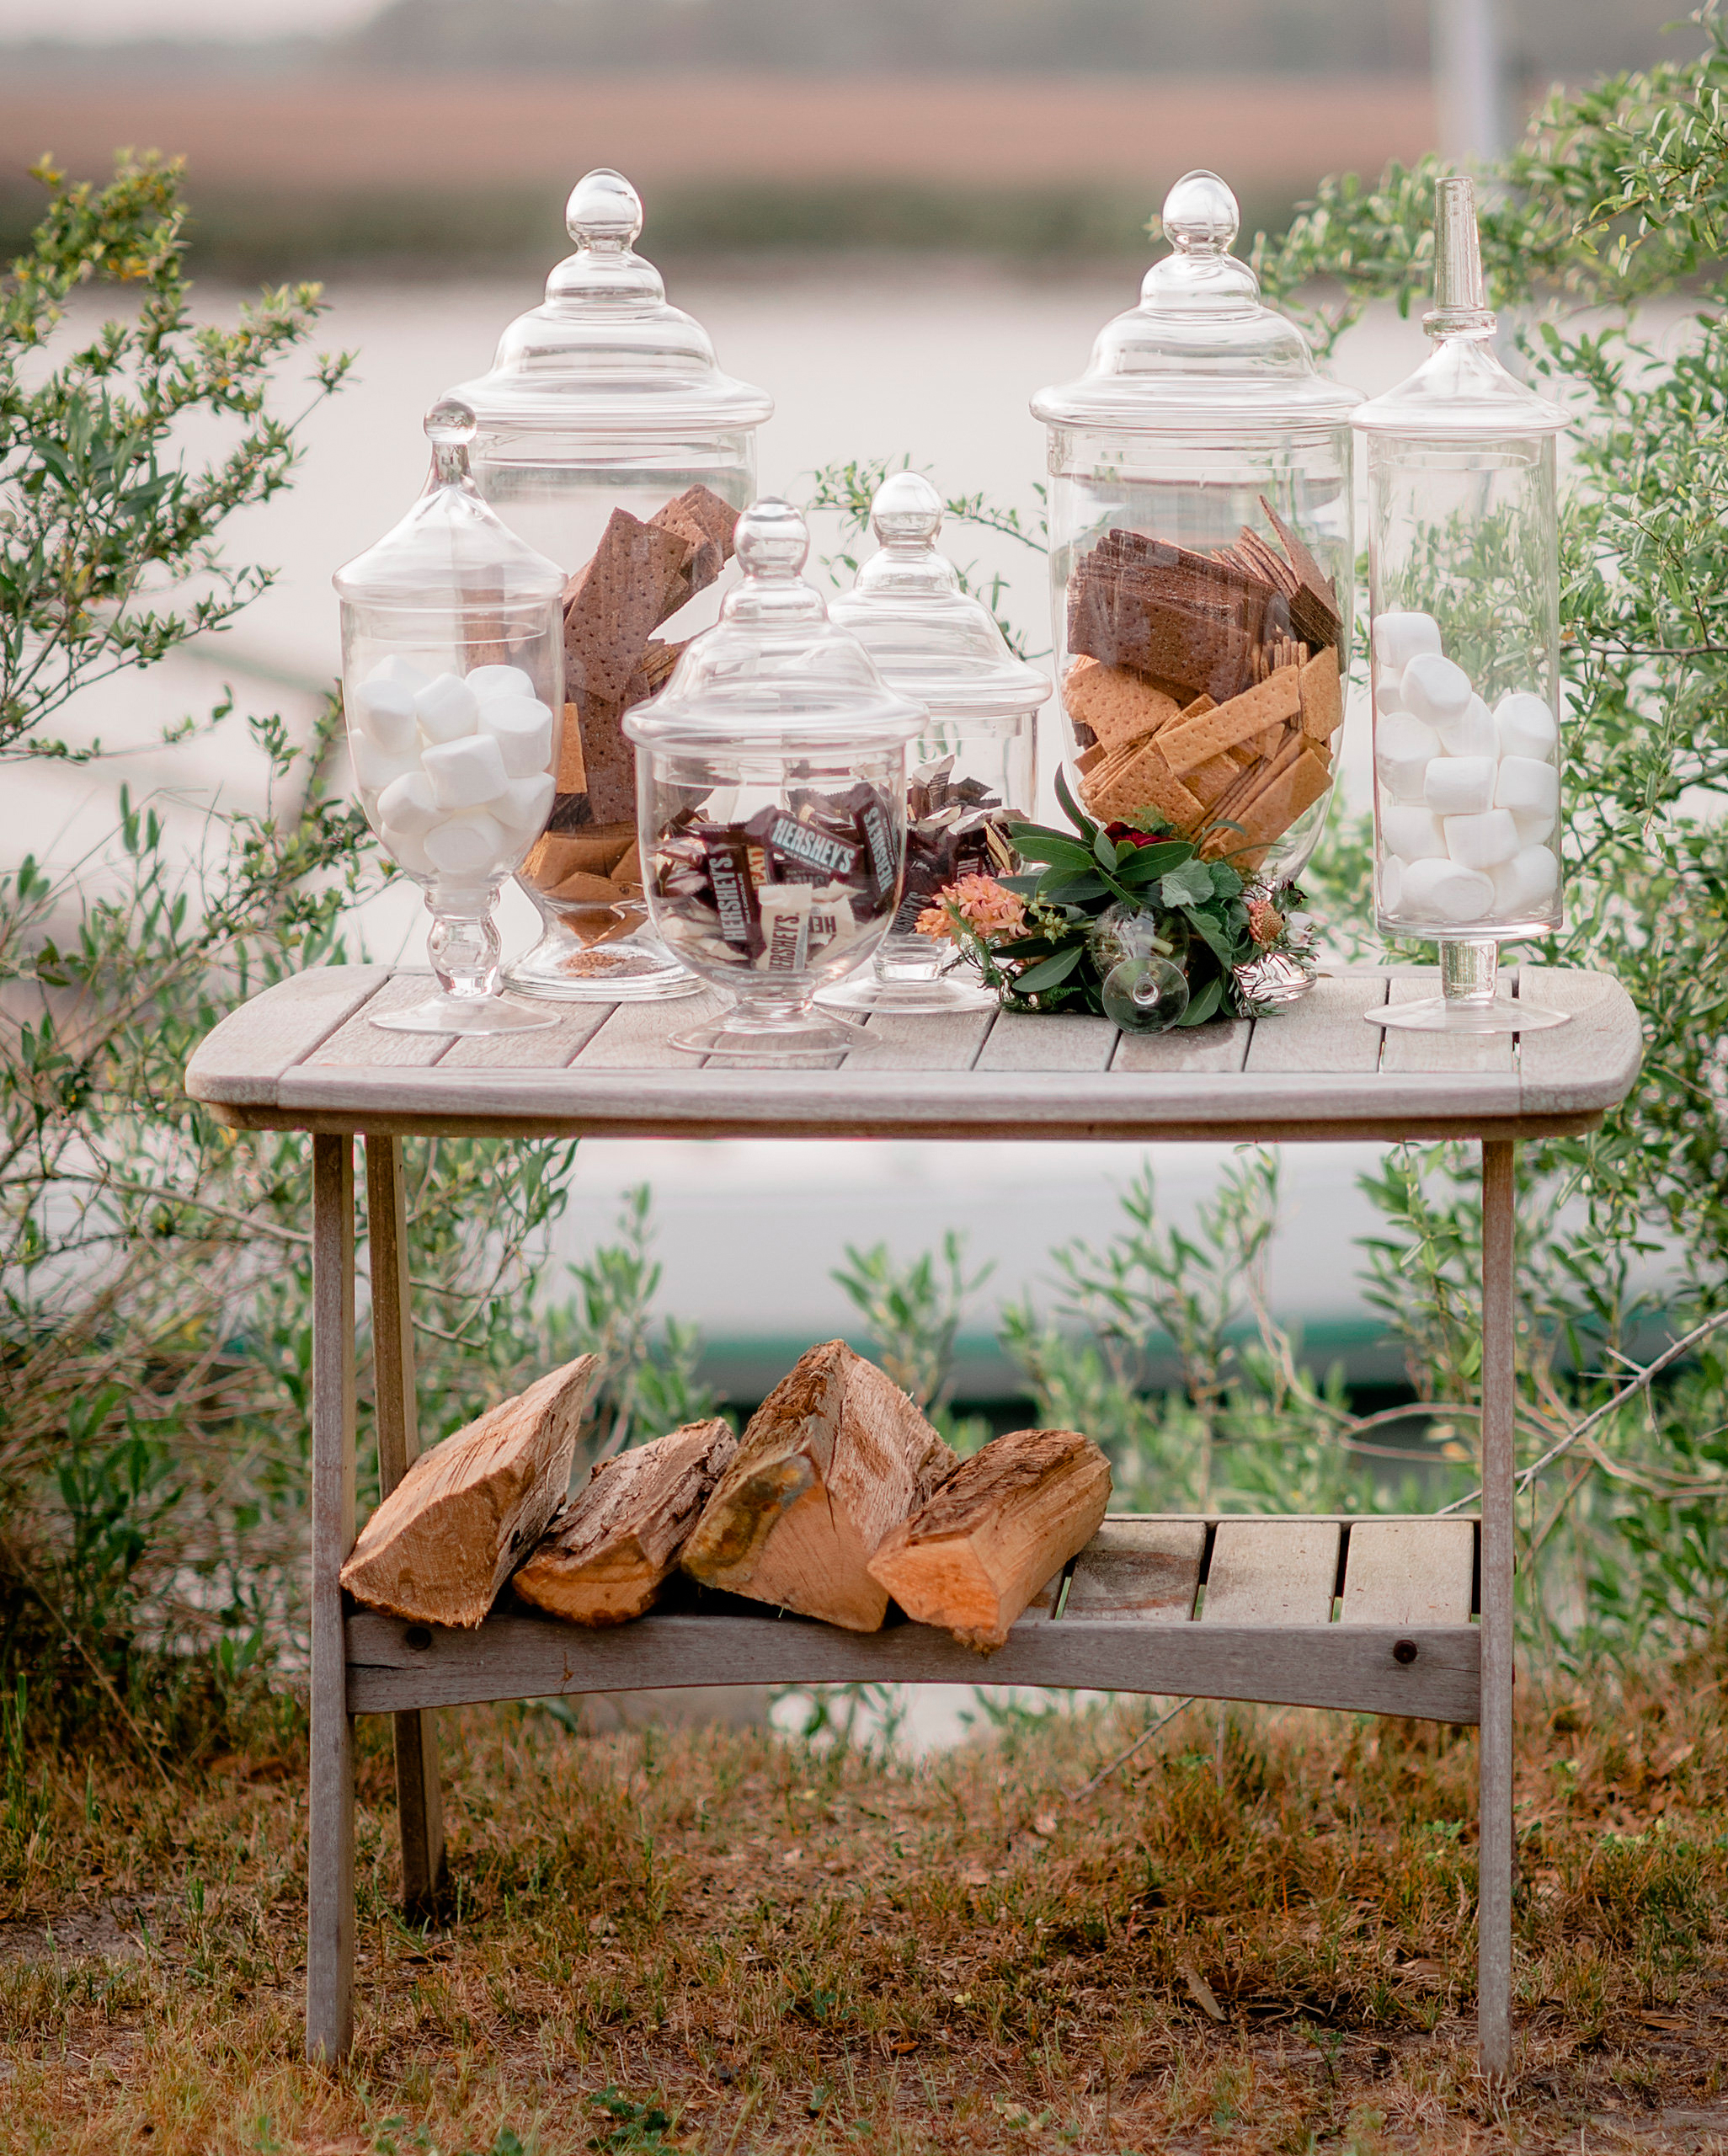 S'mores Dessert Table